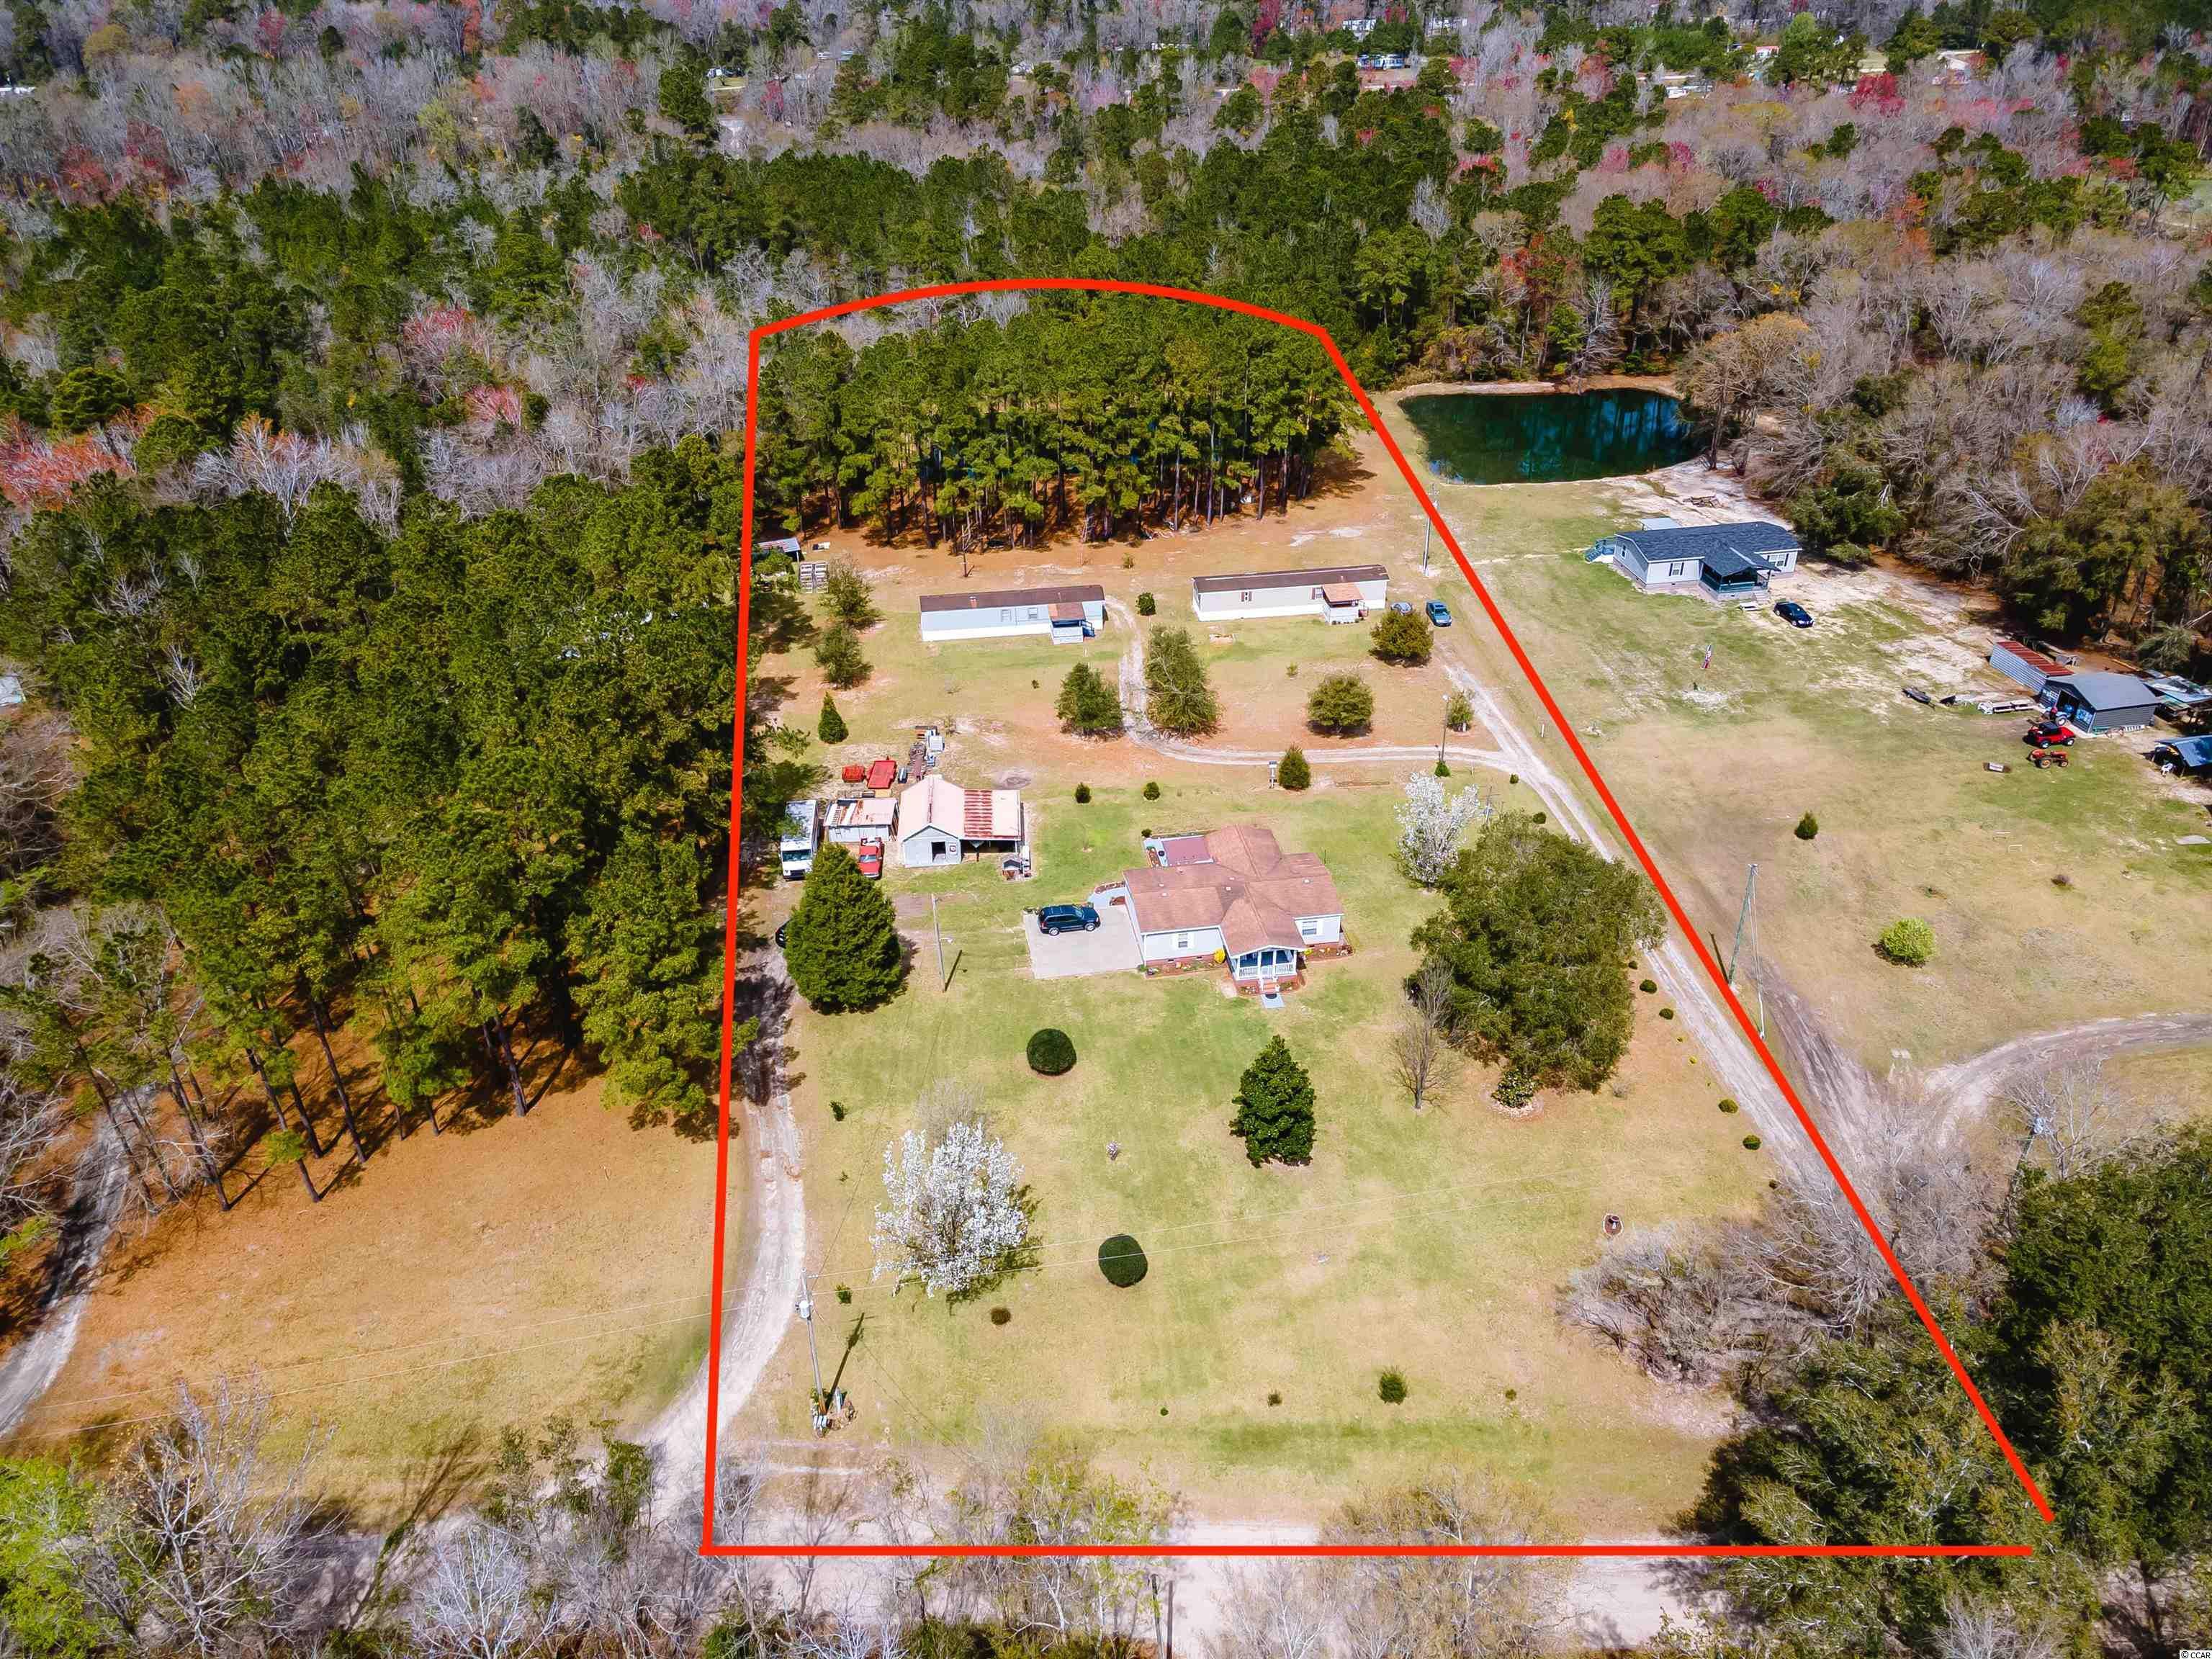 With no HOA or restrictions, this countryside setting is the perfect investment! This beautiful property hosts three manufactured homes, outside storage buildings, and a fully stocked pond for the price of one! You could rent them all, or live in the double wide and rent out the 2 properties in the back. The choice is yours! It is just 15 minutes from downtown Conway and 35 minutes from Myrtle Beach. Call today for more information on this investment.